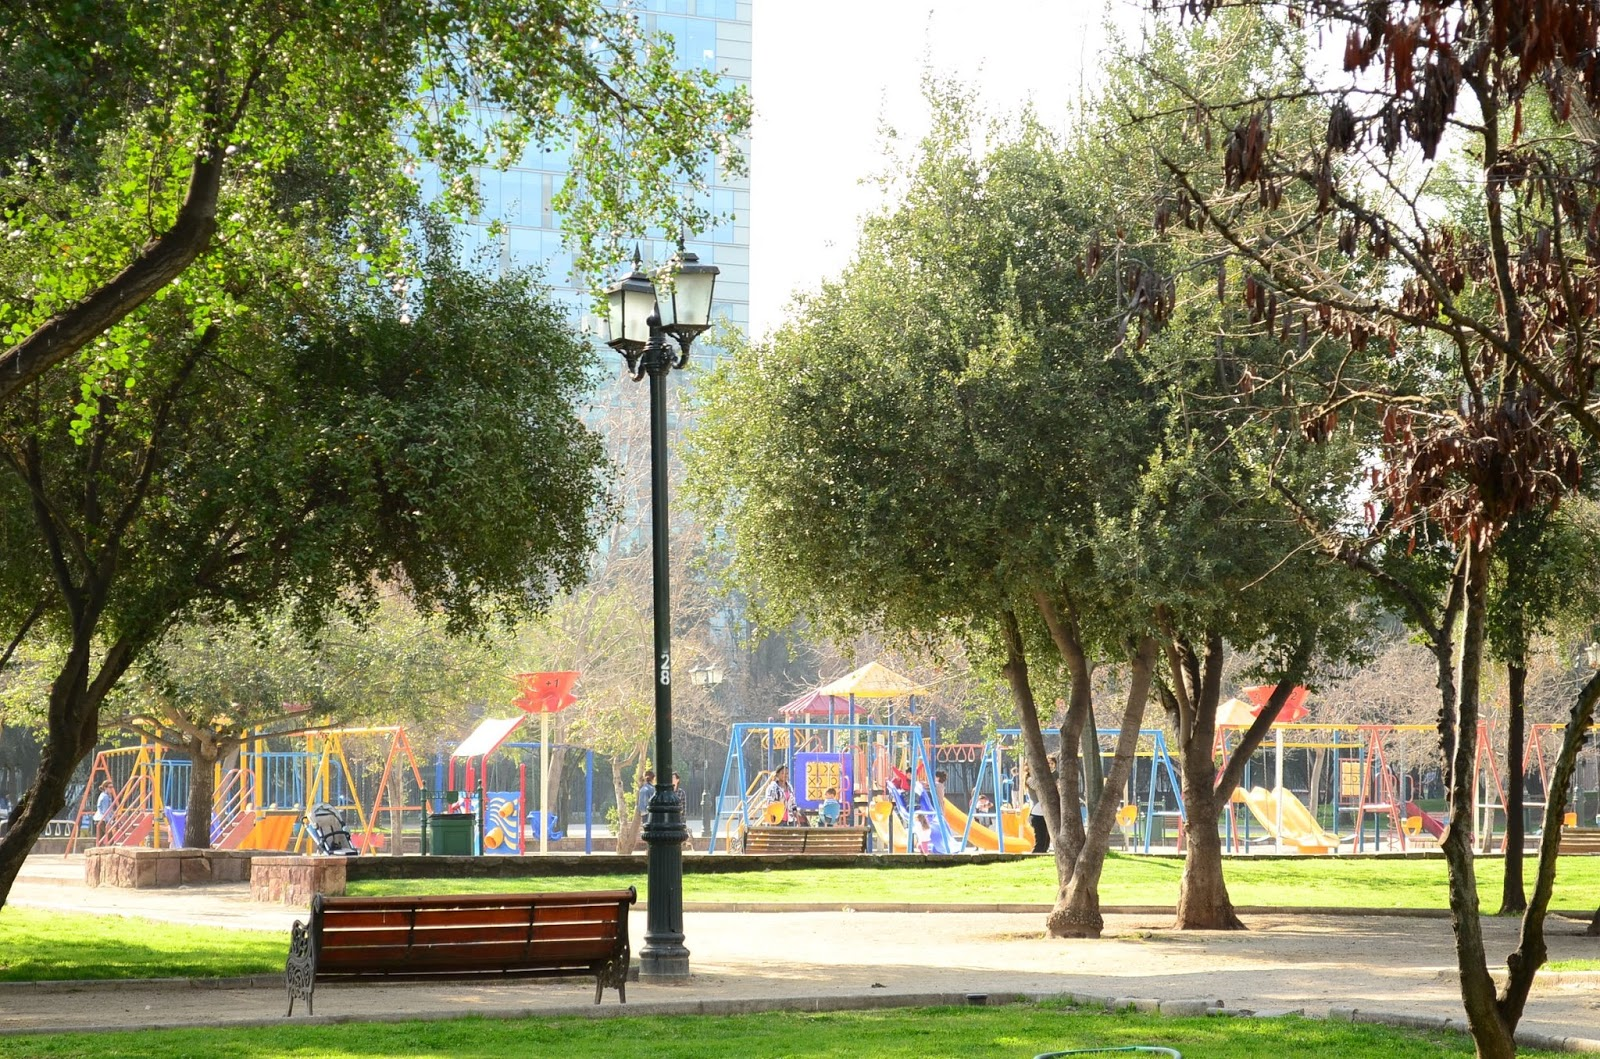 The Practical Mom: Child friendly Chile: Restrooms, Creches, Parks & Zoos in Santiago